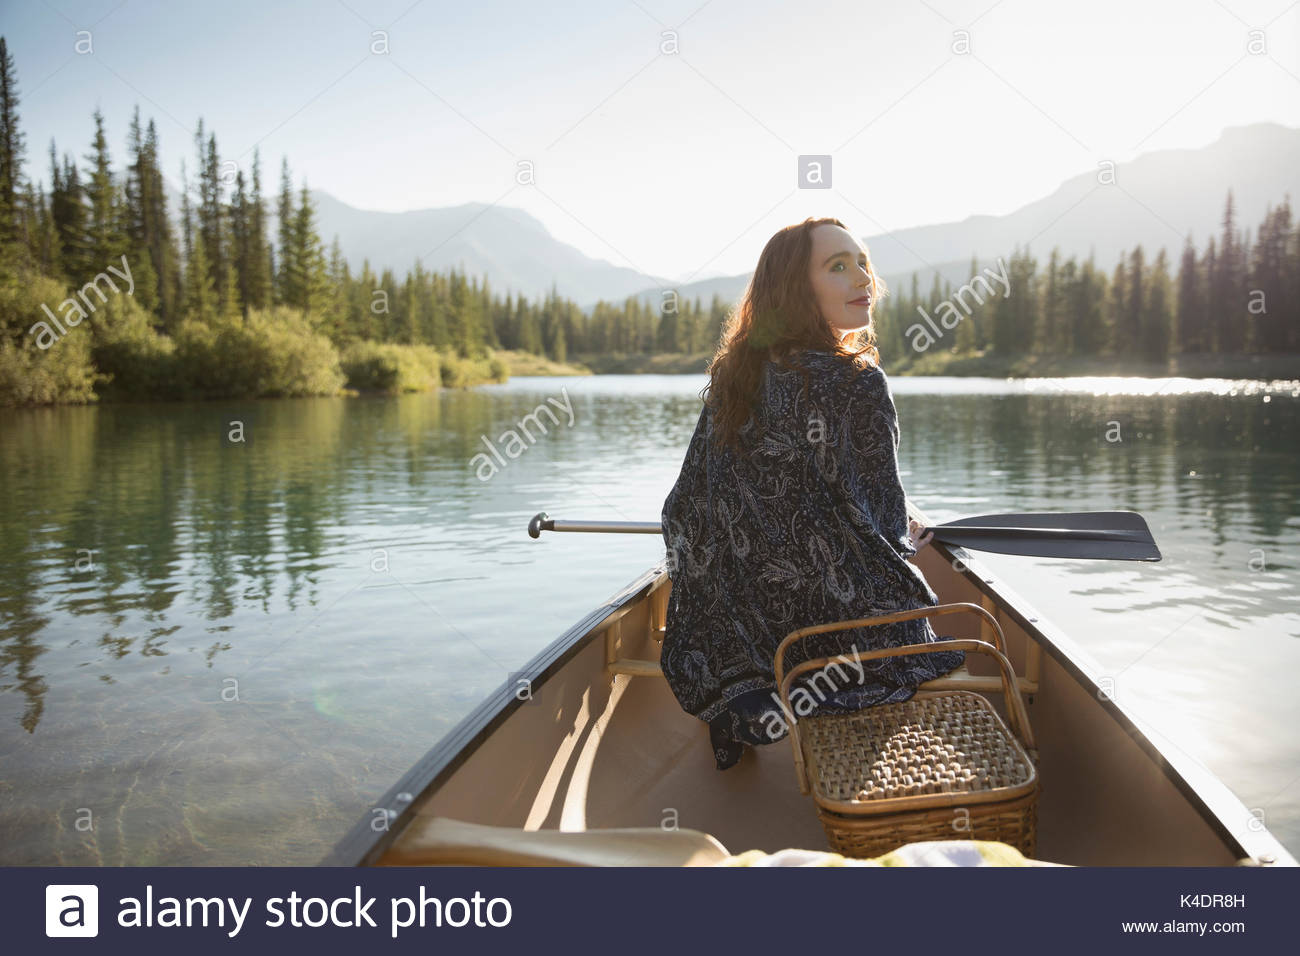 Serene woman with picnic basket holding oar in canoe on sunny summer lake - Stock Image